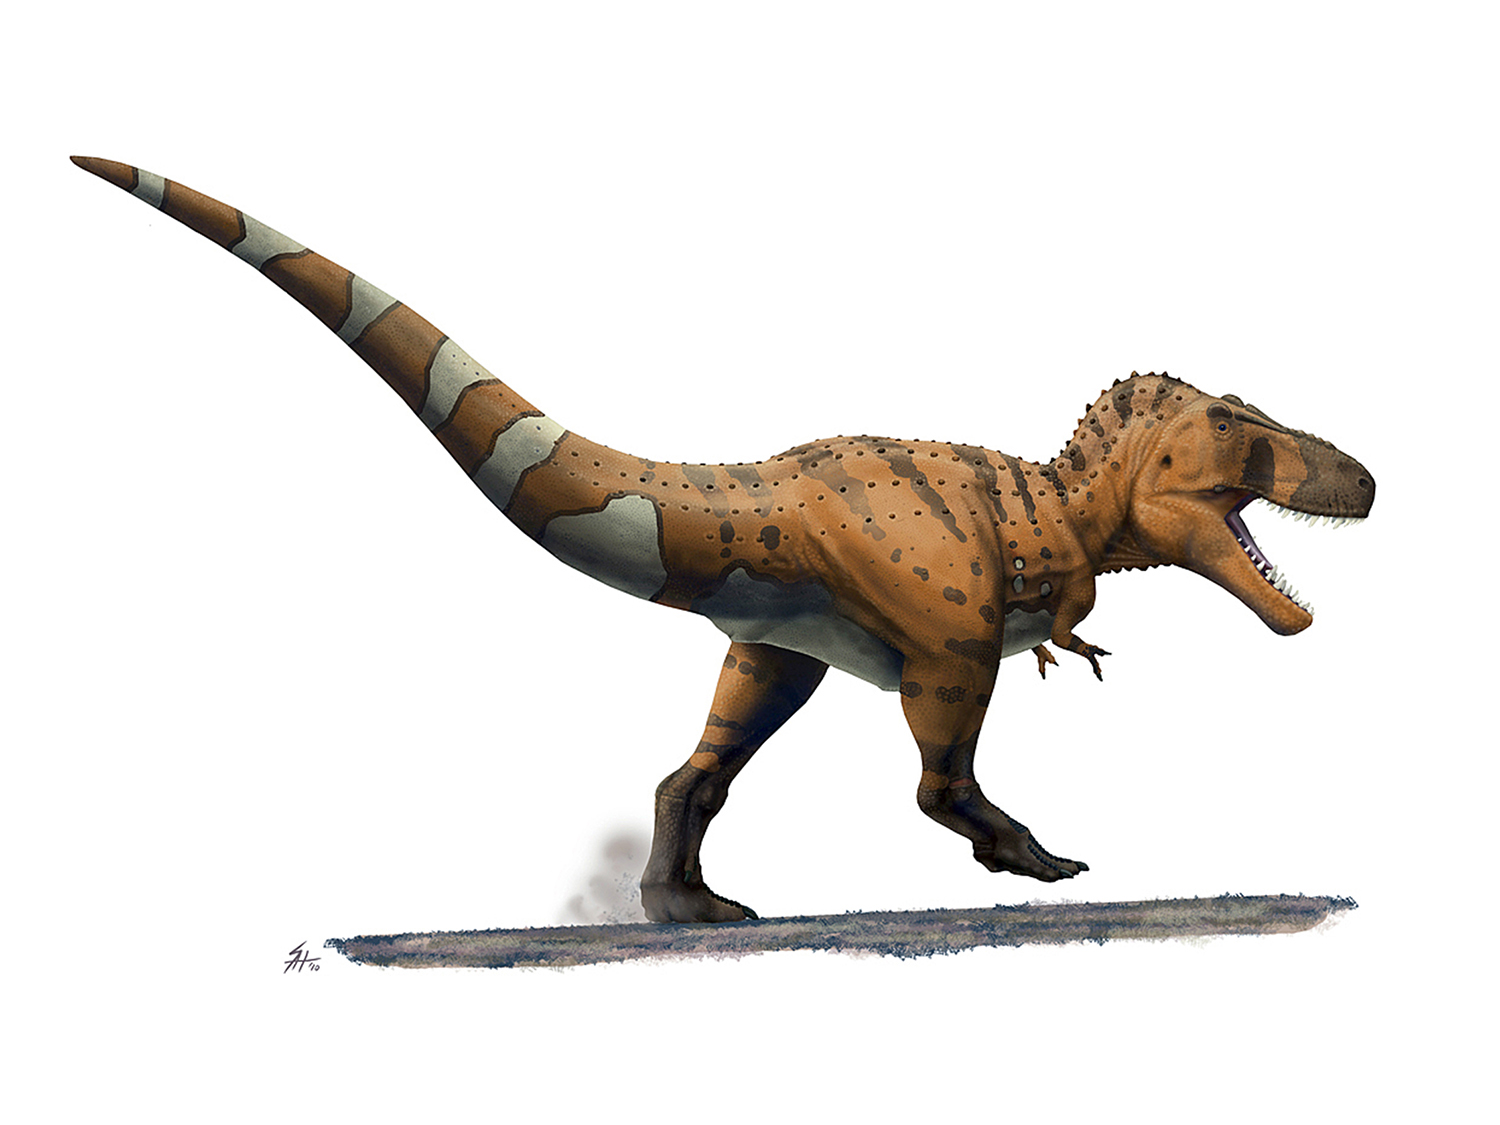 Stan the T. rex in a hurry